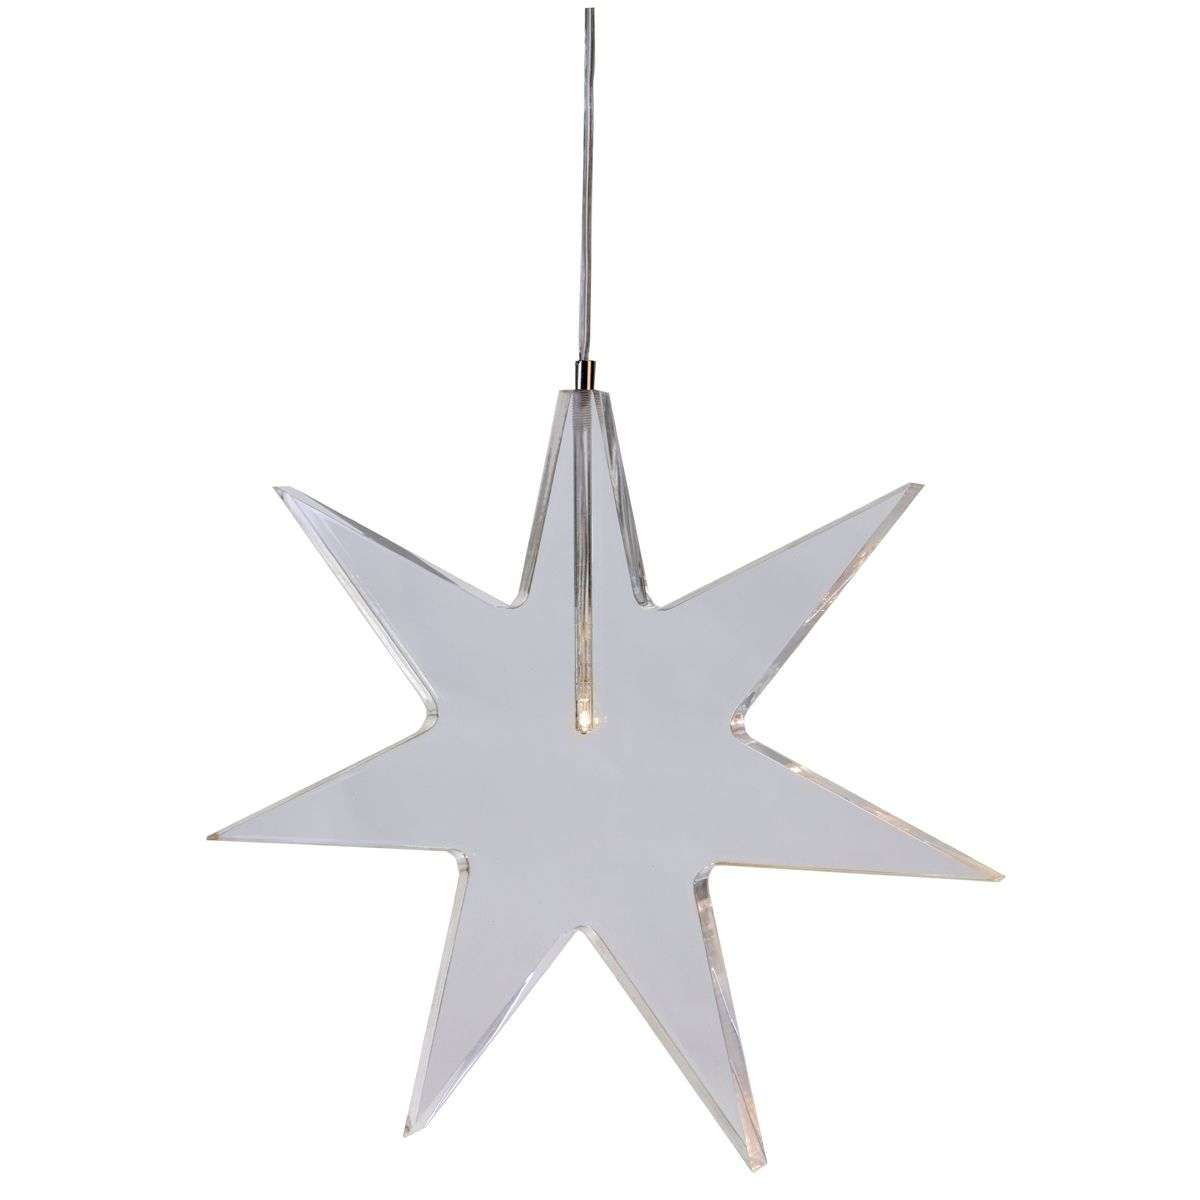 Estrella LED transparente lámpara decorativa Karla-1522505-31